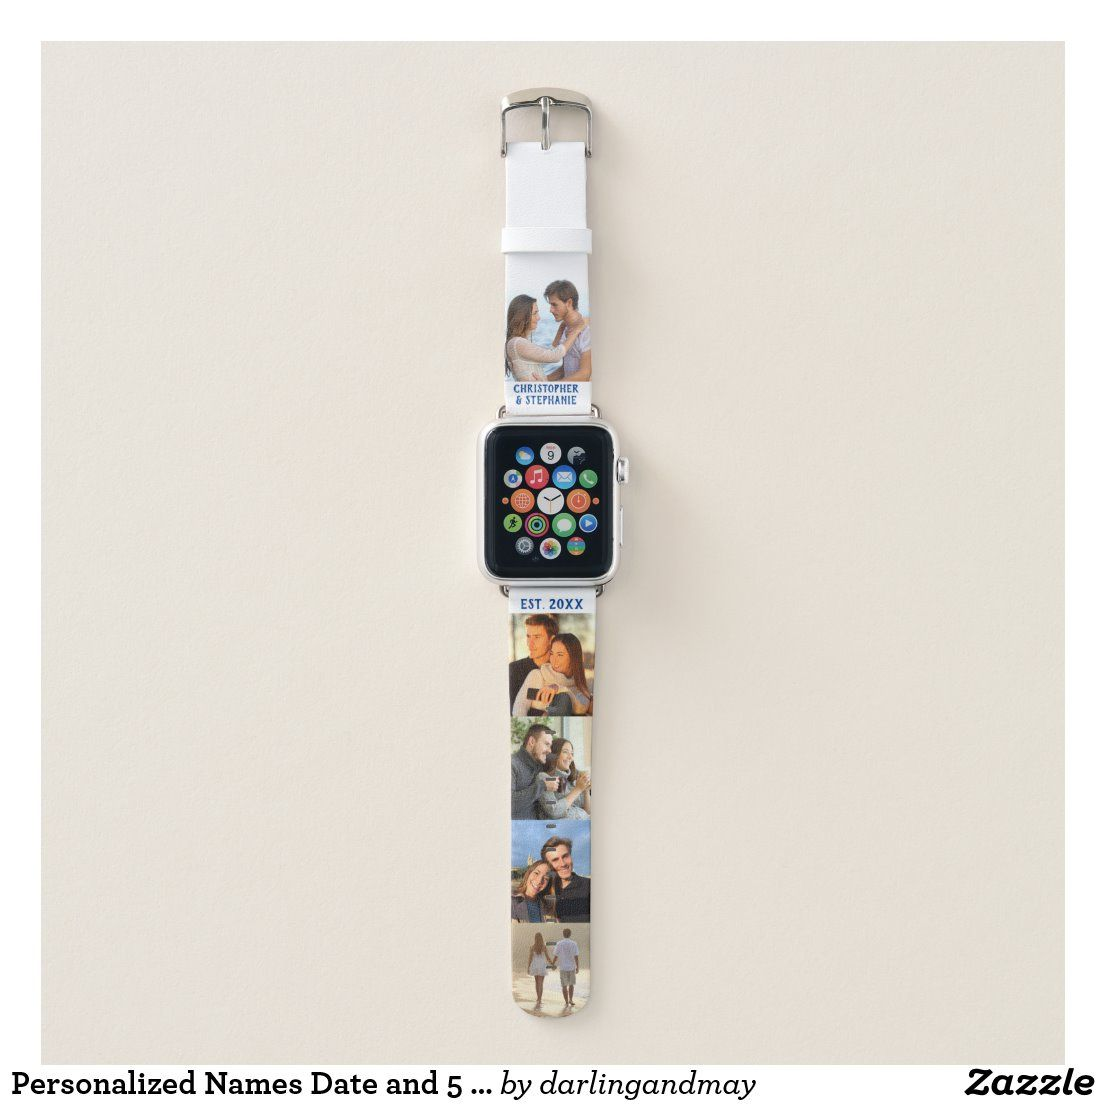 Personalized Names Date and 5 Photo Collage Apple Watch